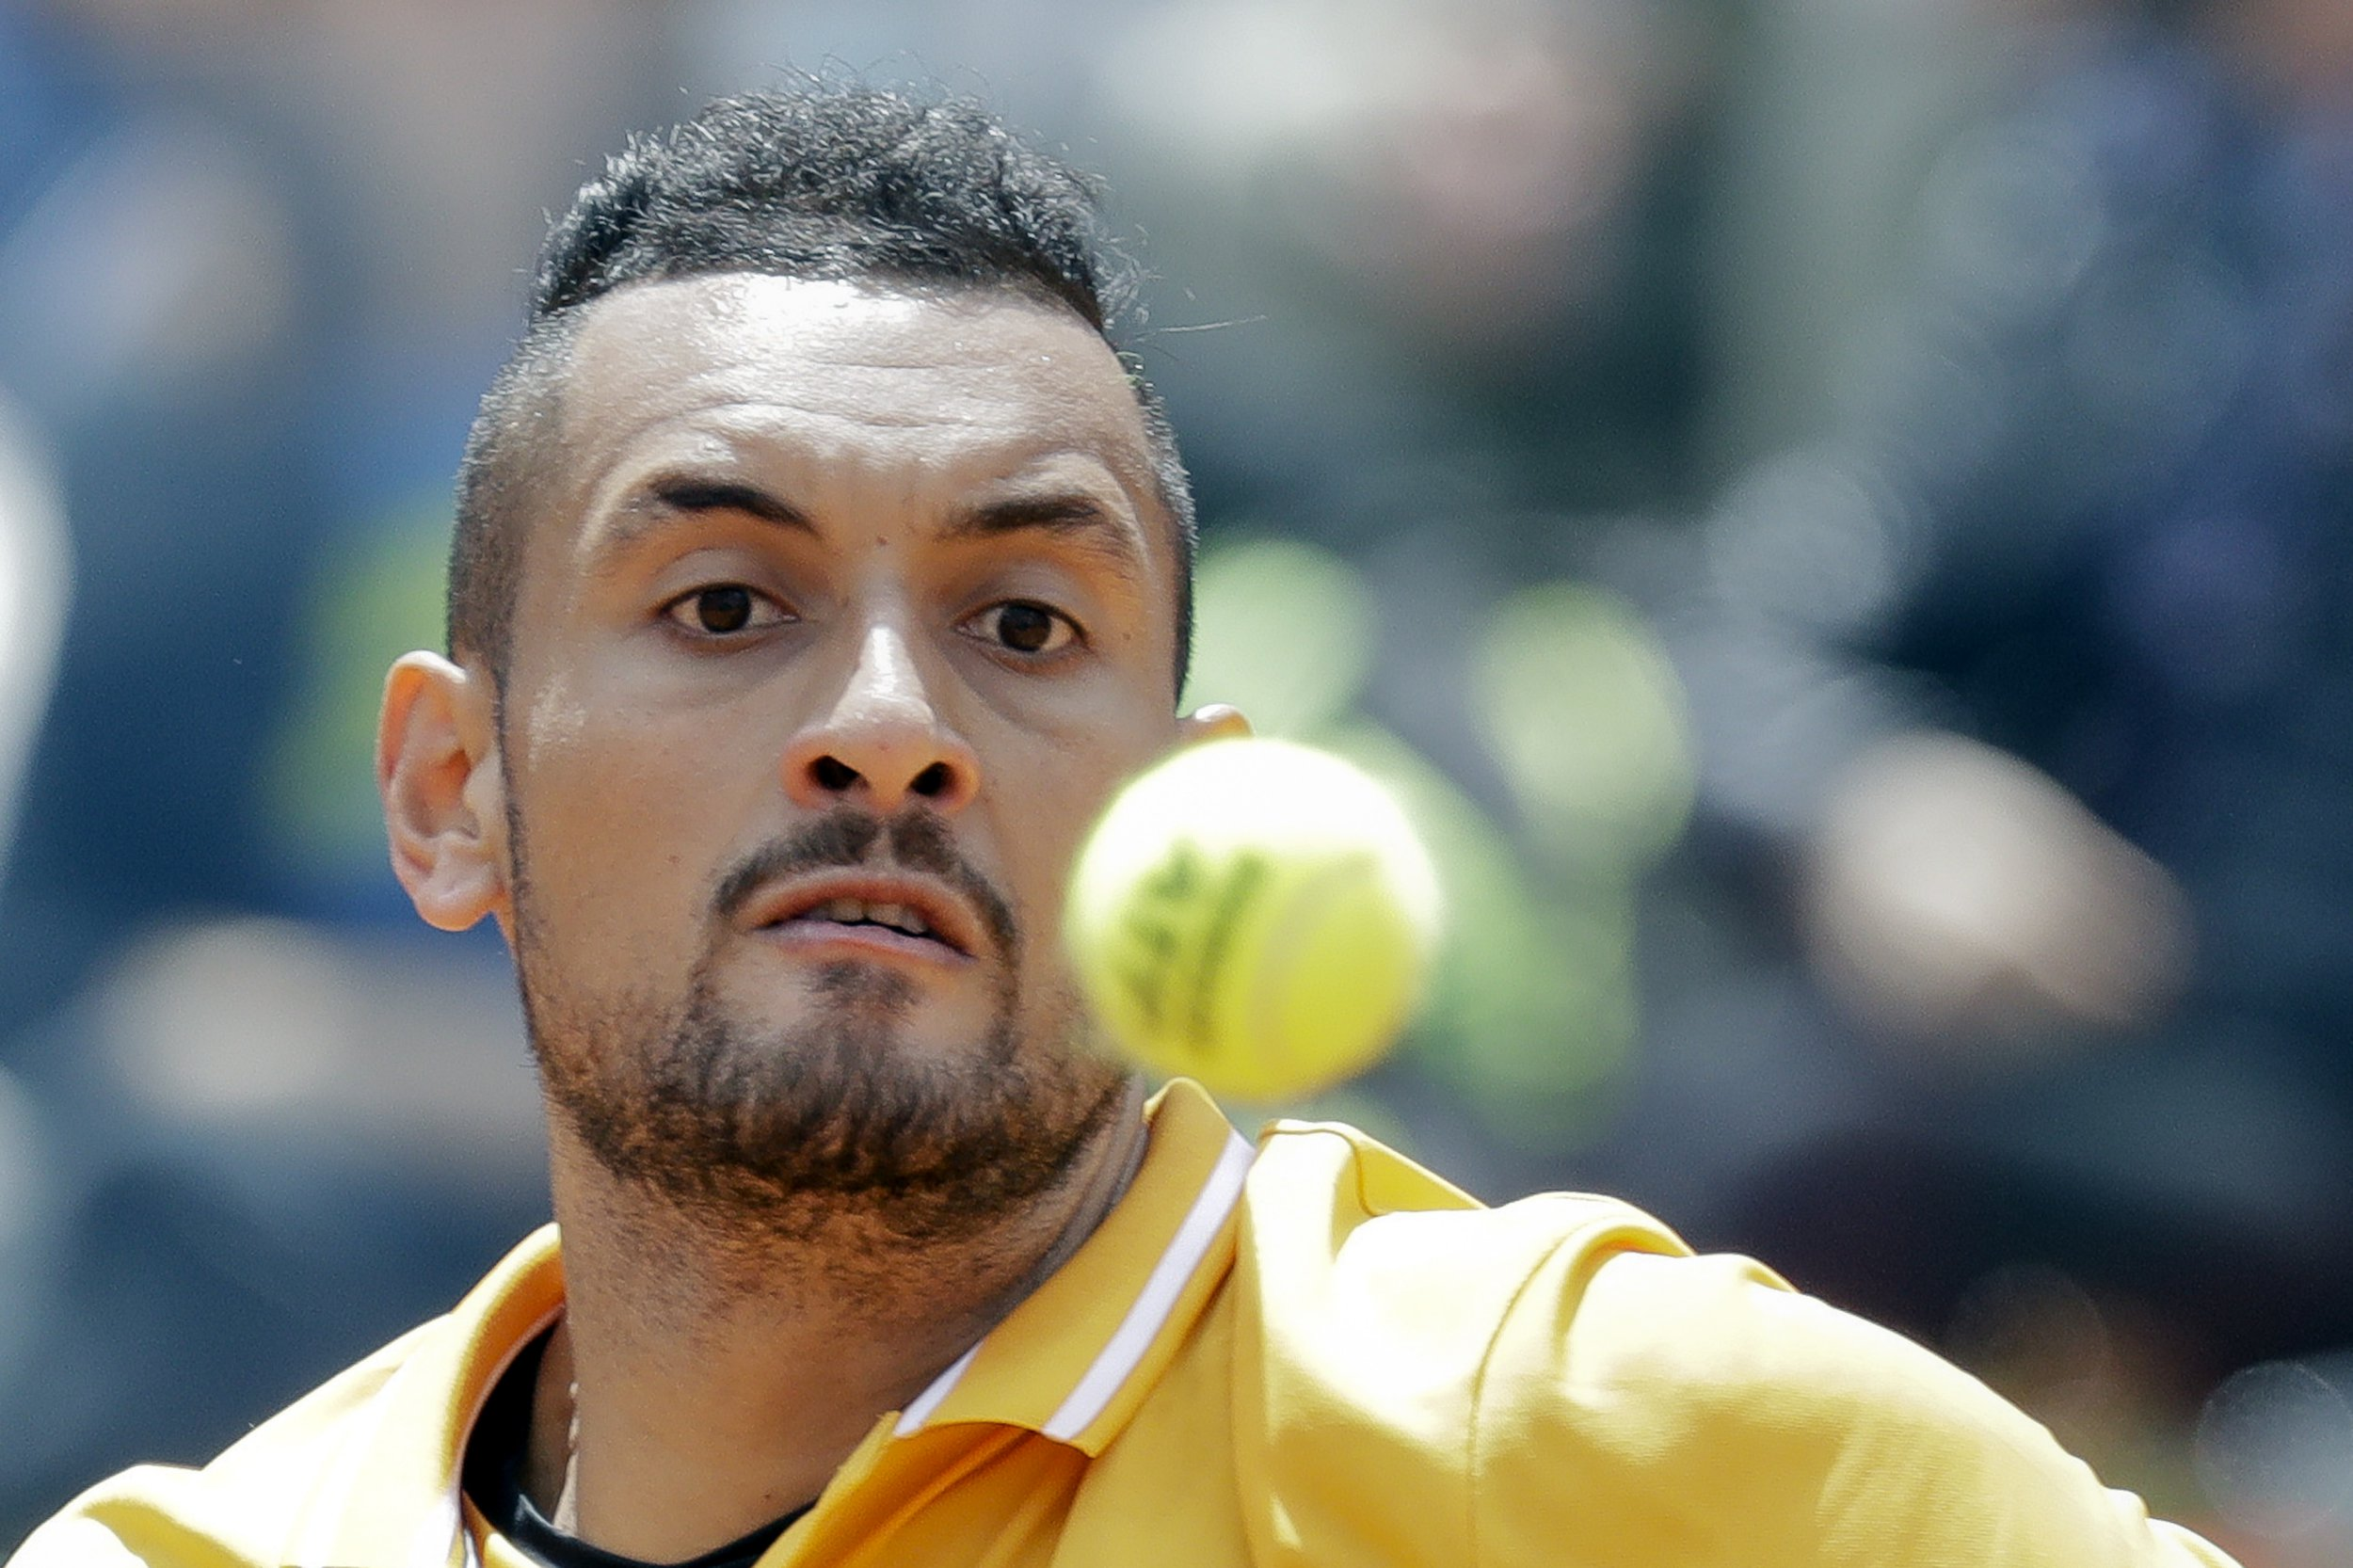 Furious Nick Kyrgios disqualified after launching chair onto court at Italian Open